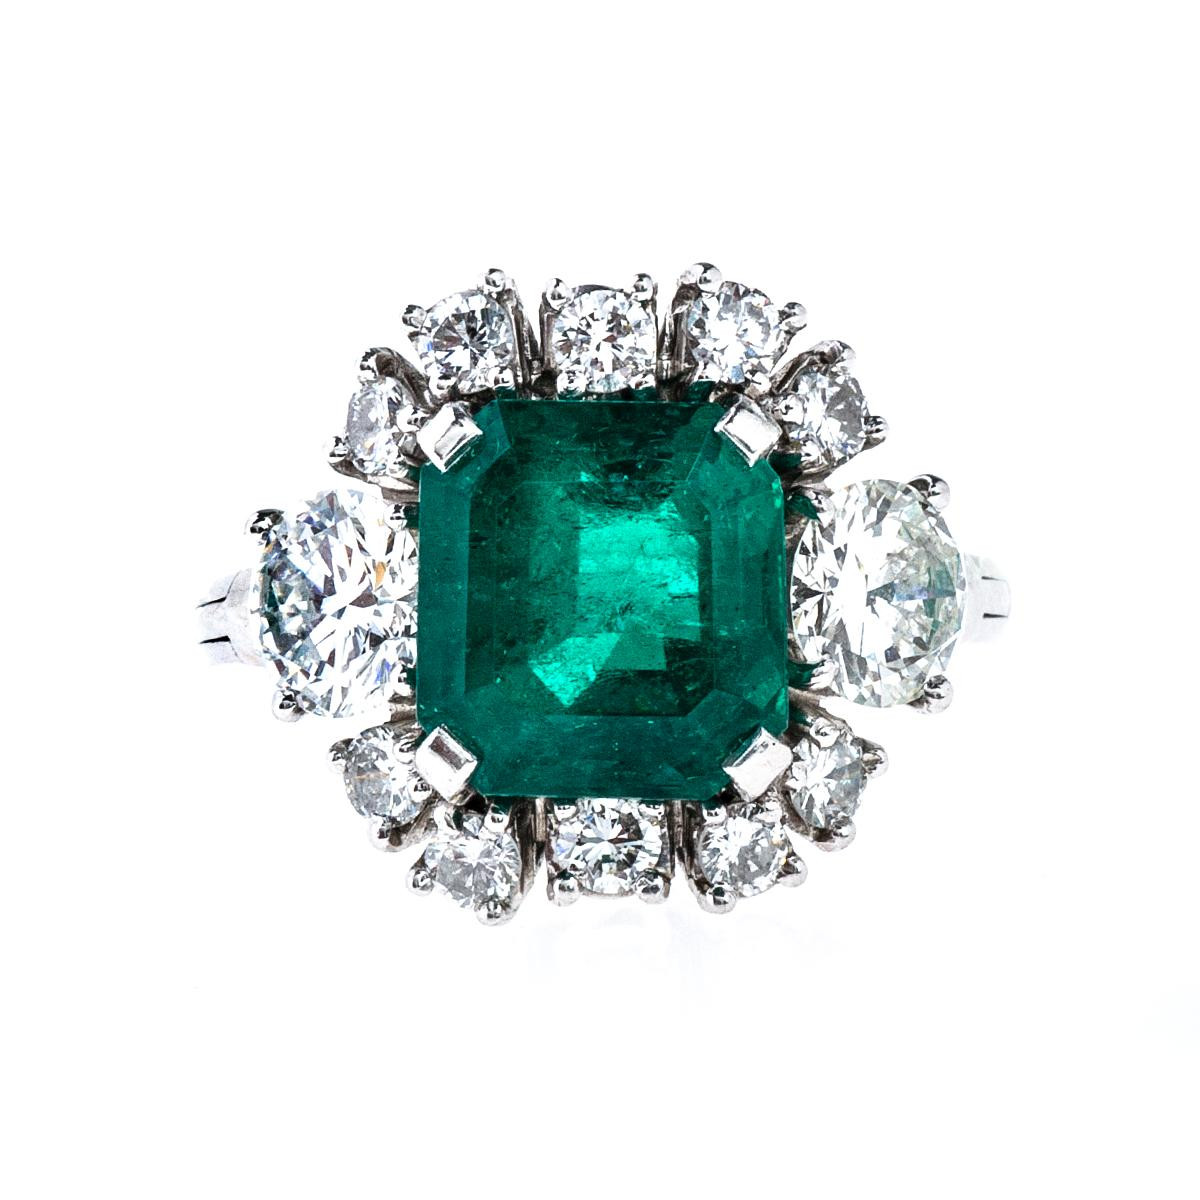 Vintage 3.00 CT Emerald & Diamond Ring